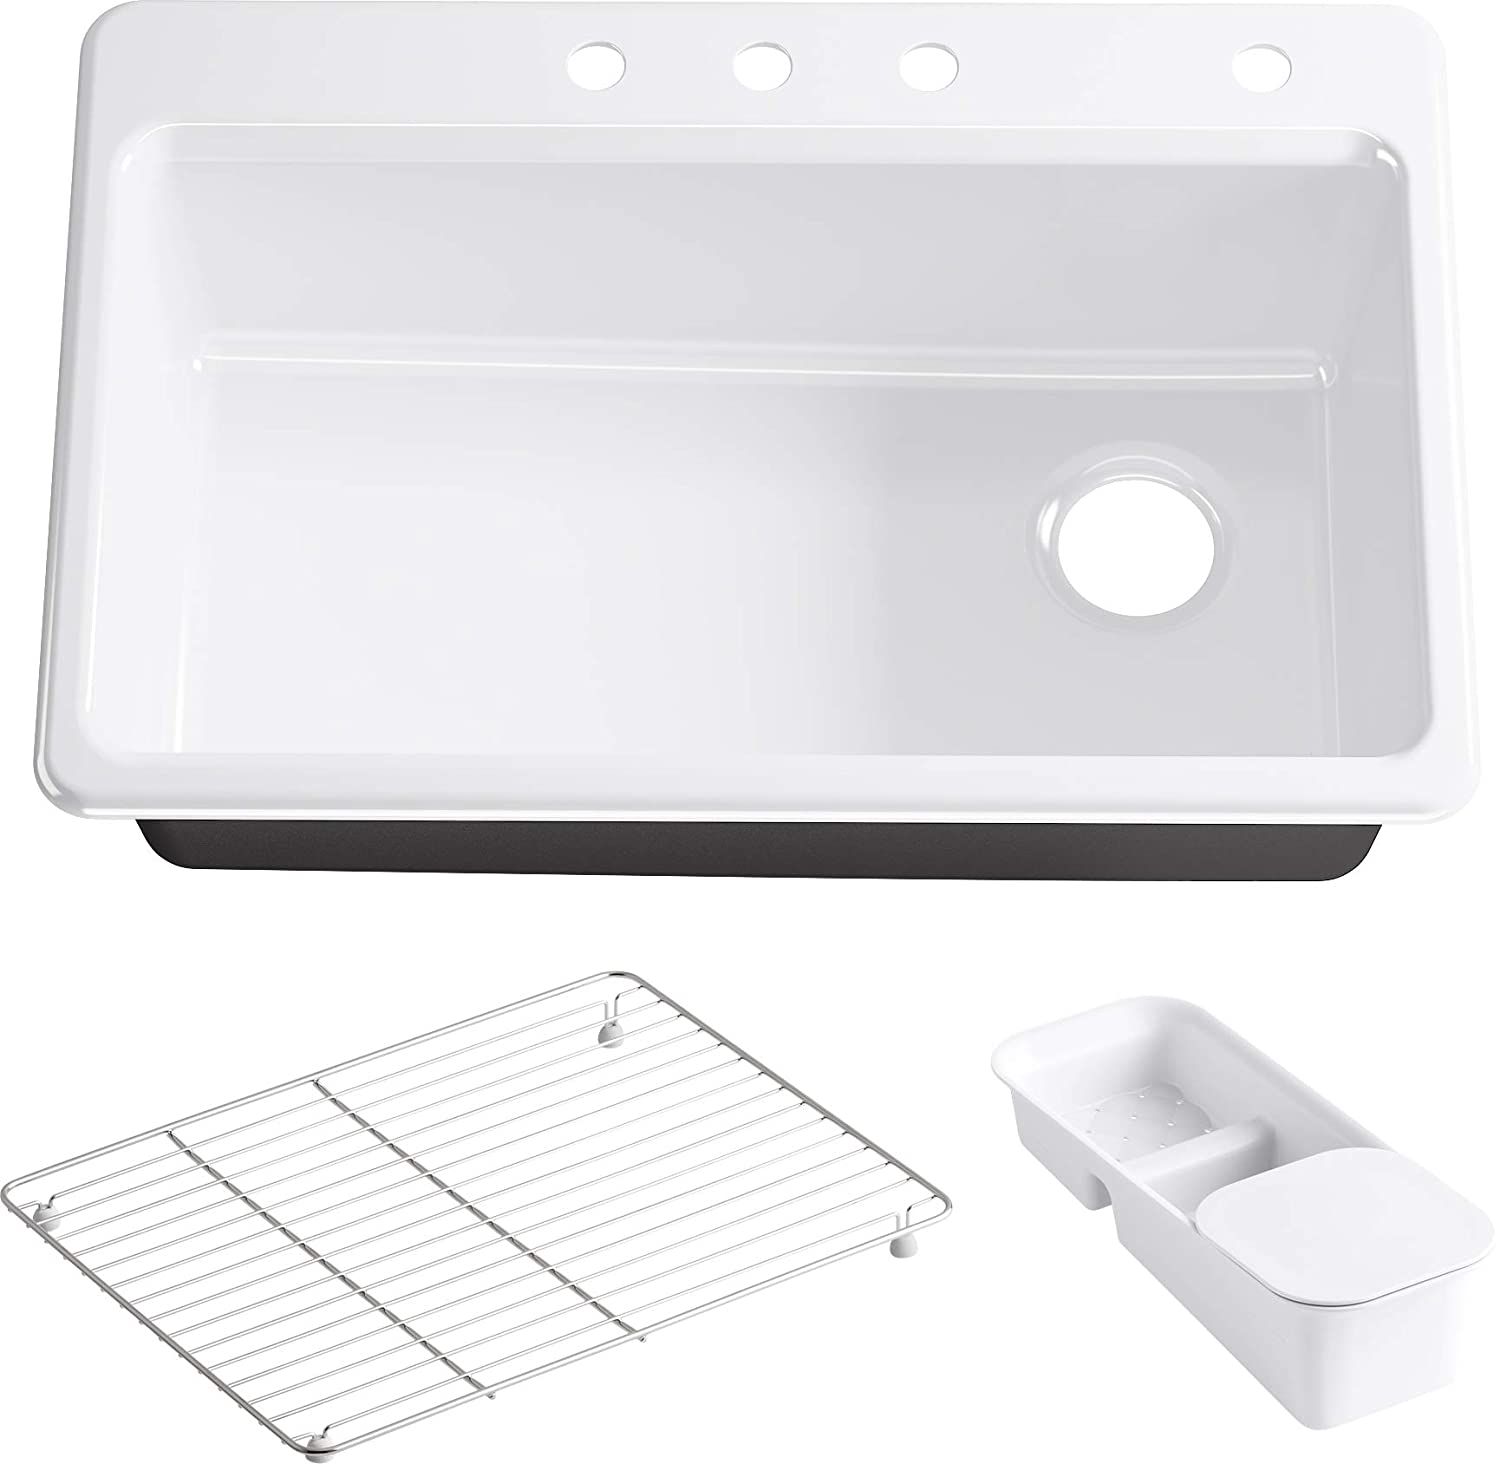 KOHLER K-5871-4A2-0 Riverby Single Bowl Top-Mount Kitchen Sink with Four-Holes, White